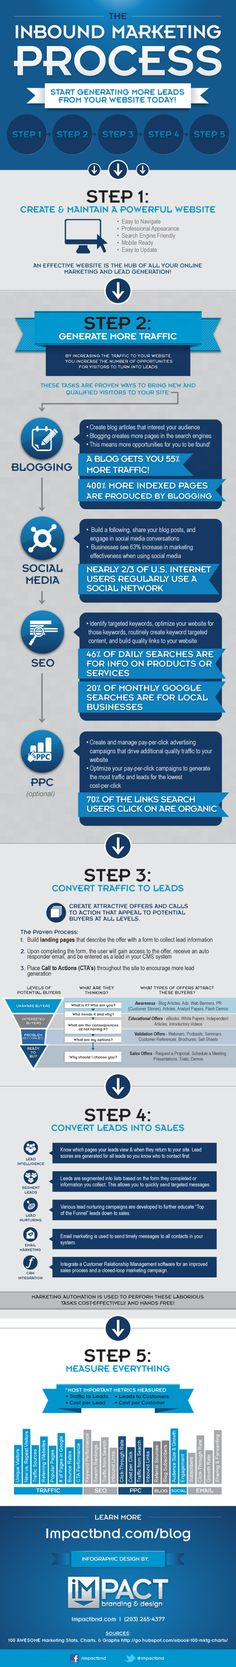 Awesome infographic - How Inbound Marketing Works, From Start to Finish [INFOGRAPHIC]    Read more: blog.hubspot.com/...